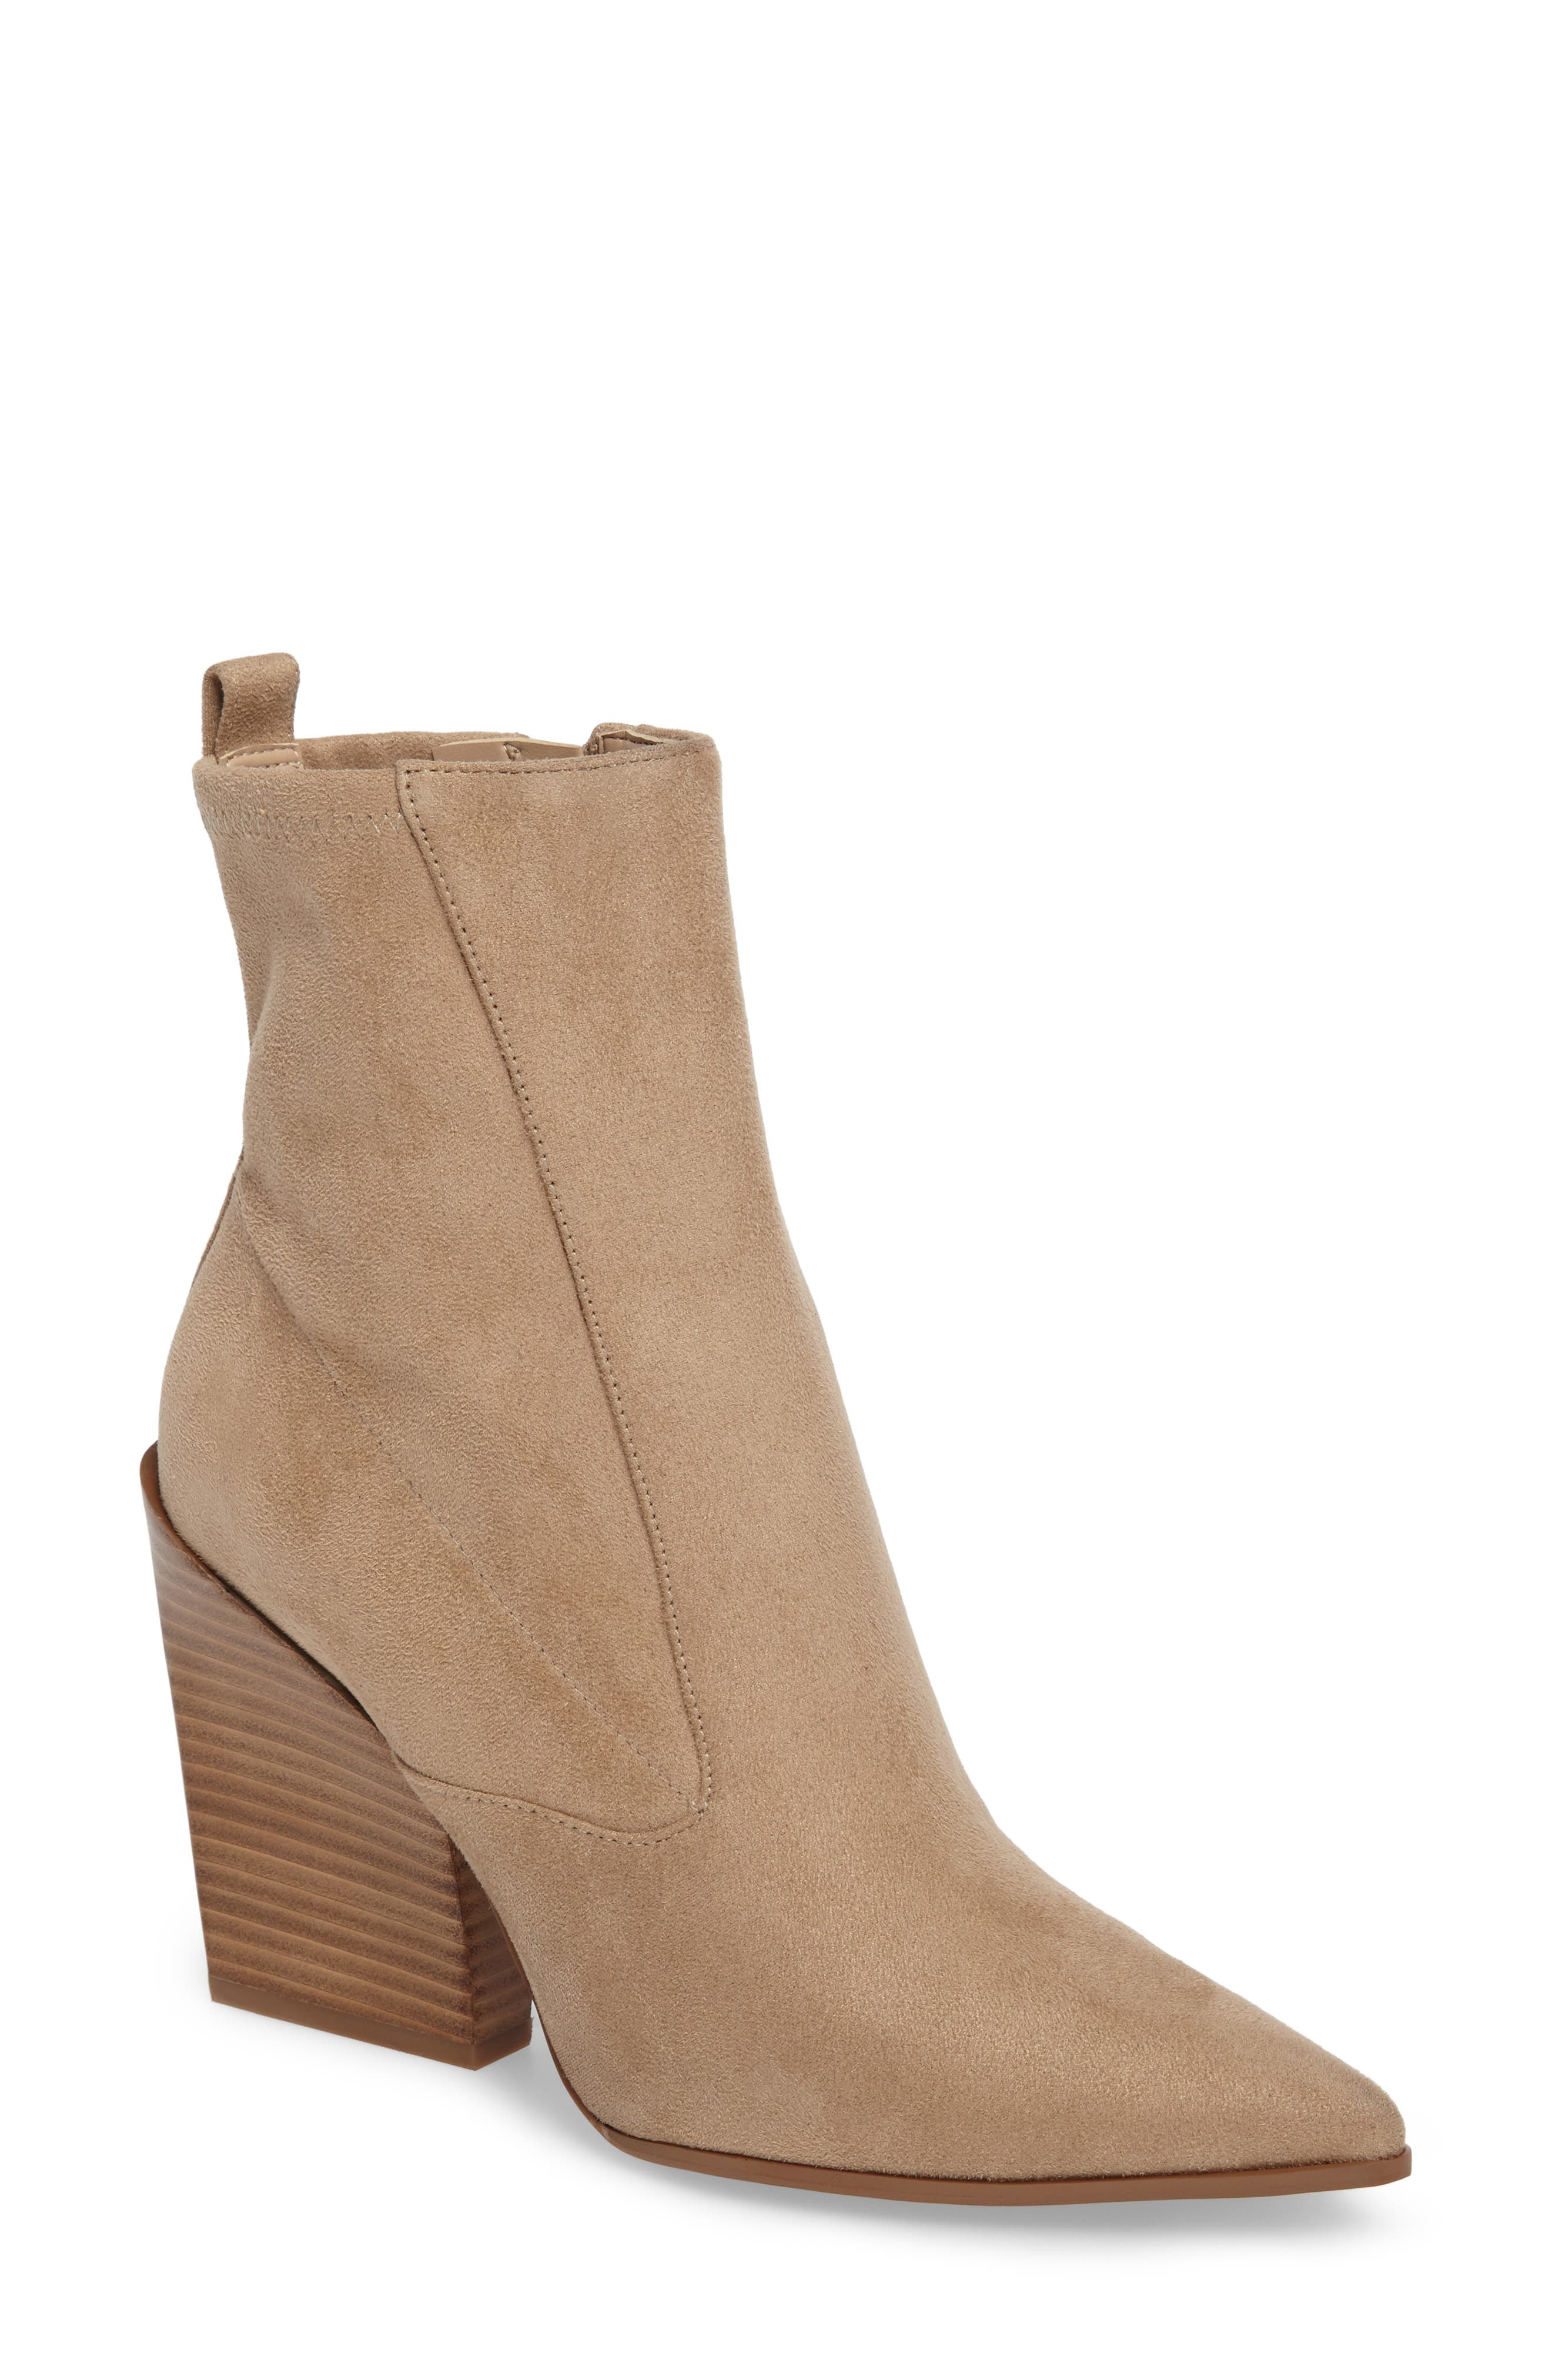 Alternate Image 1 Selected - KENDALL + KYLIE Fallyn Pointed Toe Bootie (Women)